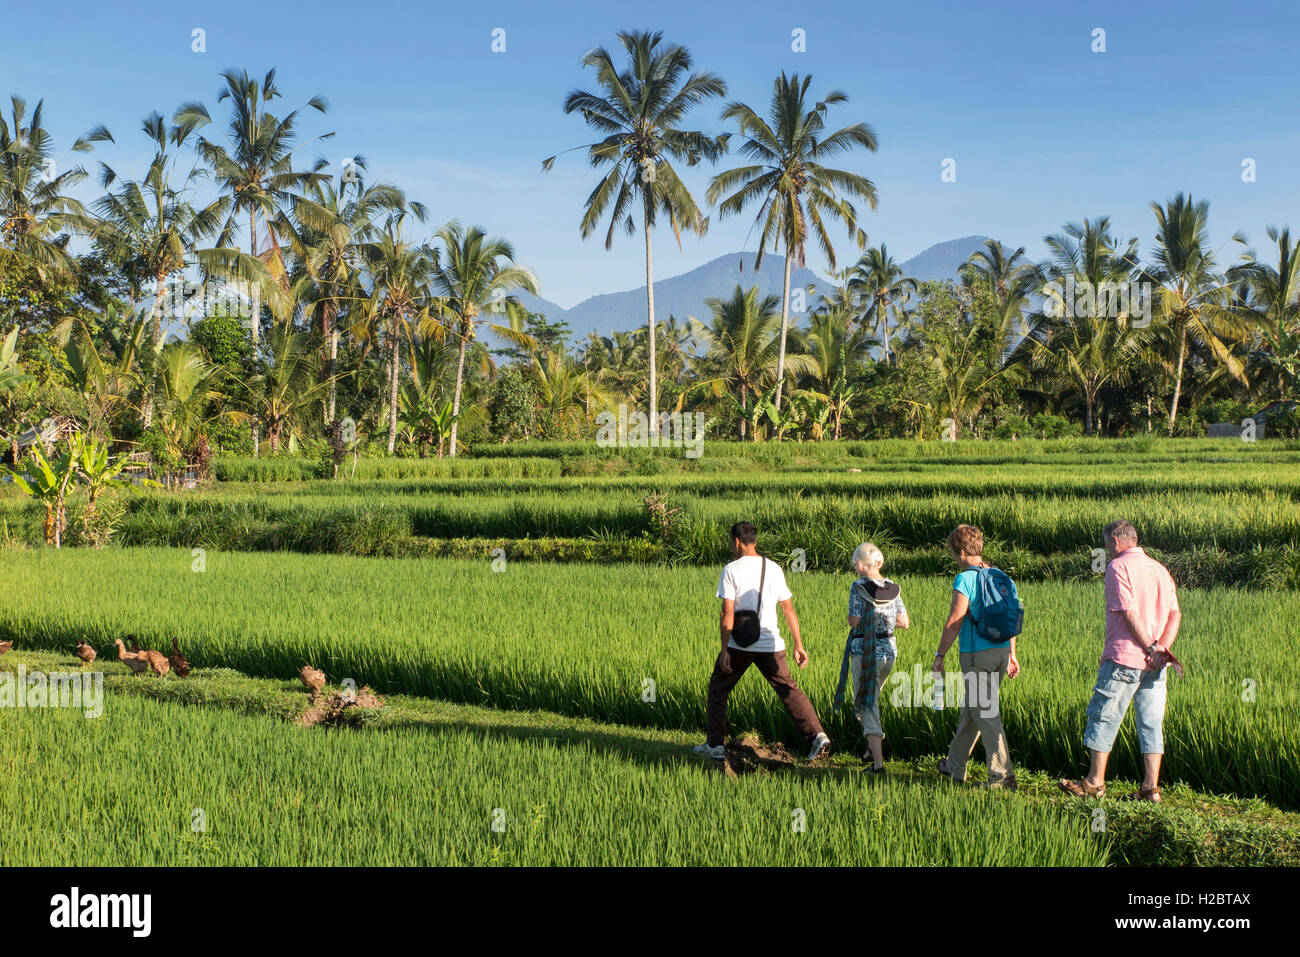 Indonesia, Bali, Payangan, Susut, tourists walking through rice fields with western volcanoes in distance Stock Photo